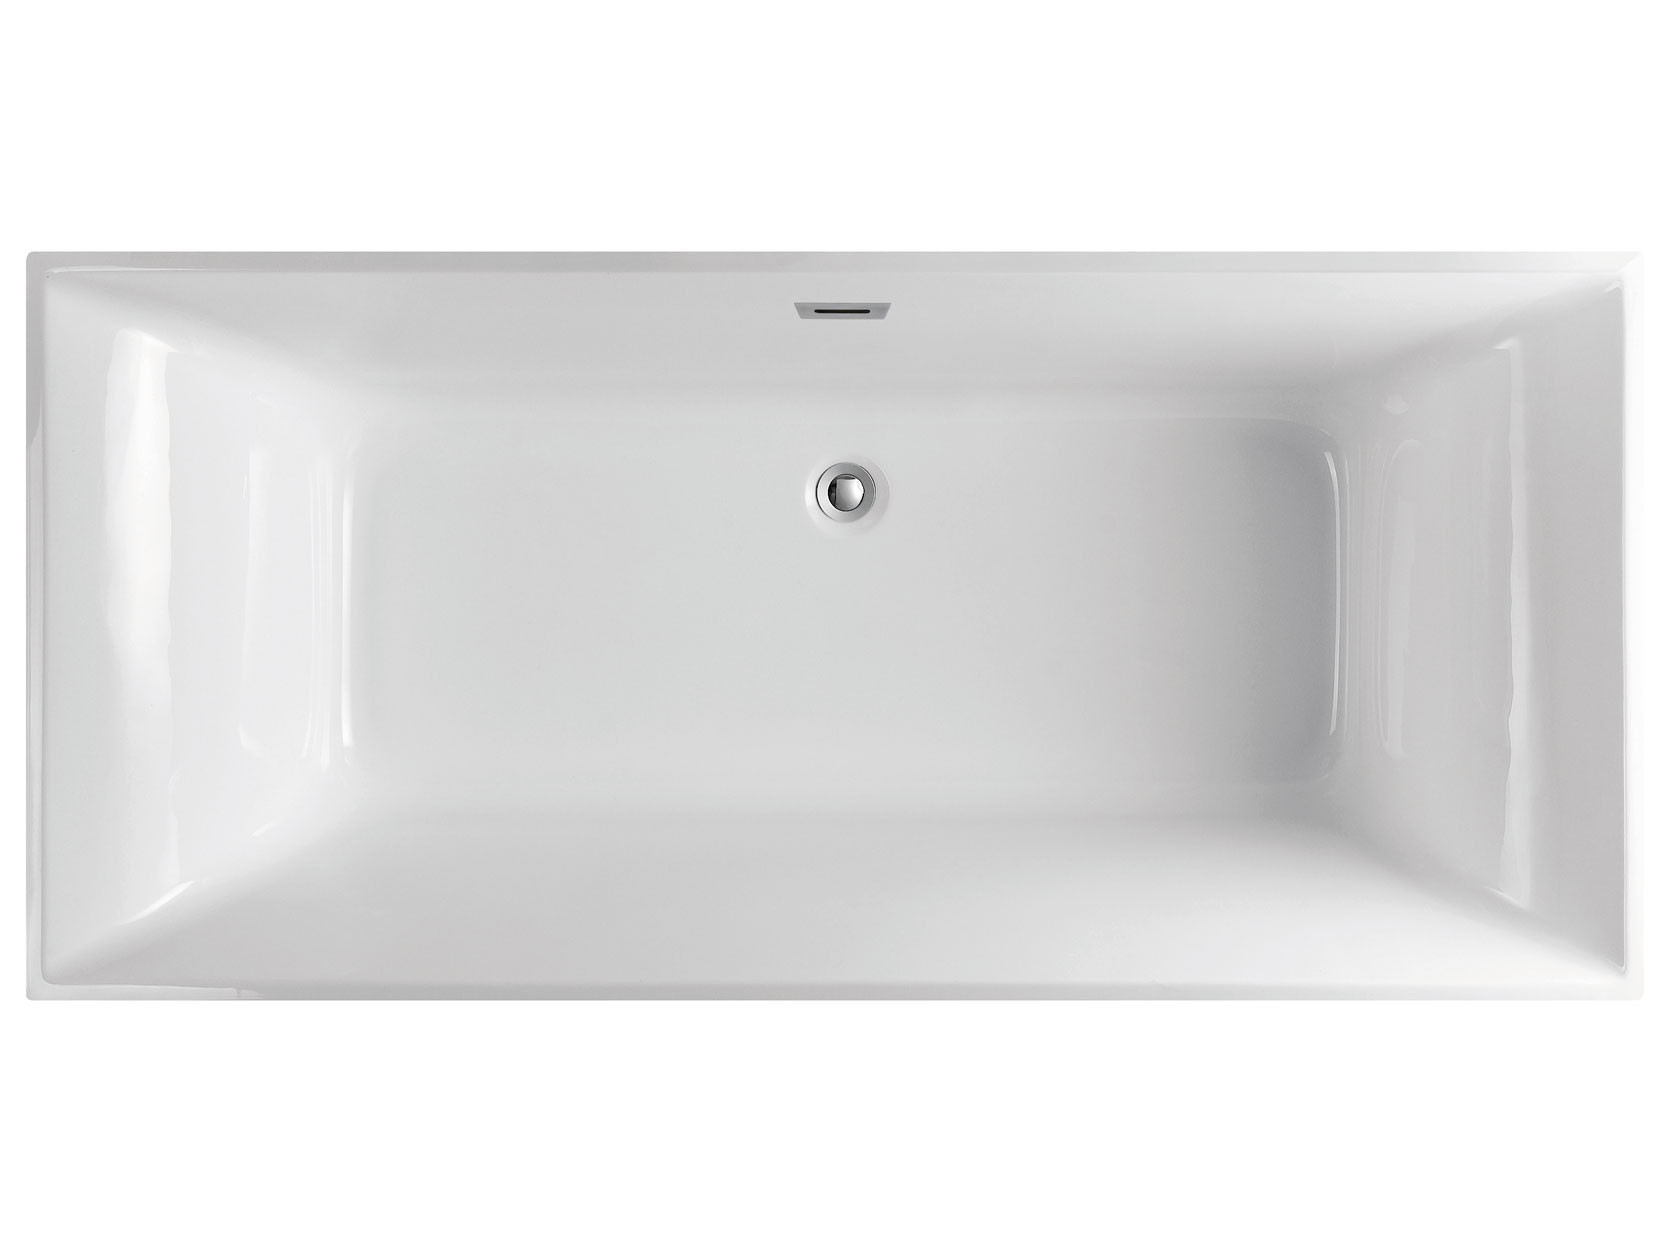 Pacific Collection PBT-PALAZZO-6631-CR - Top view